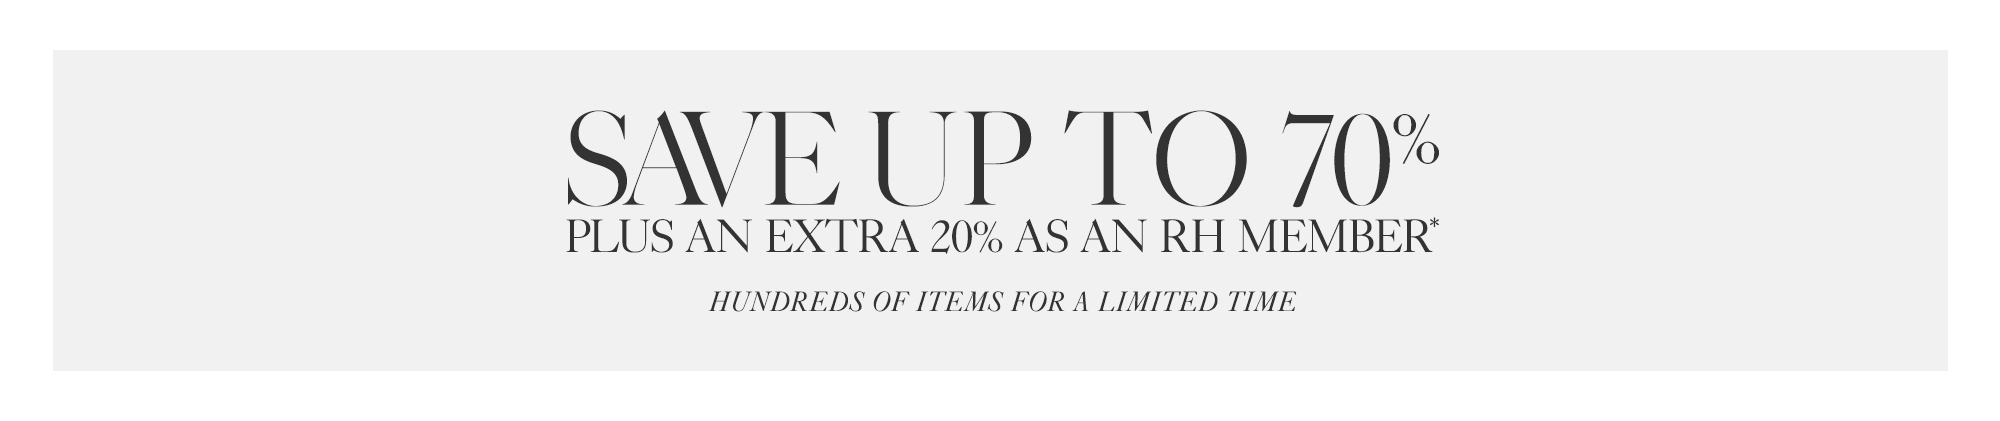 The Early Summer Sale, Save Up To 70%, Plus An Additional 20% As An RH Member*, Hunderds of Items For A Limited Time.